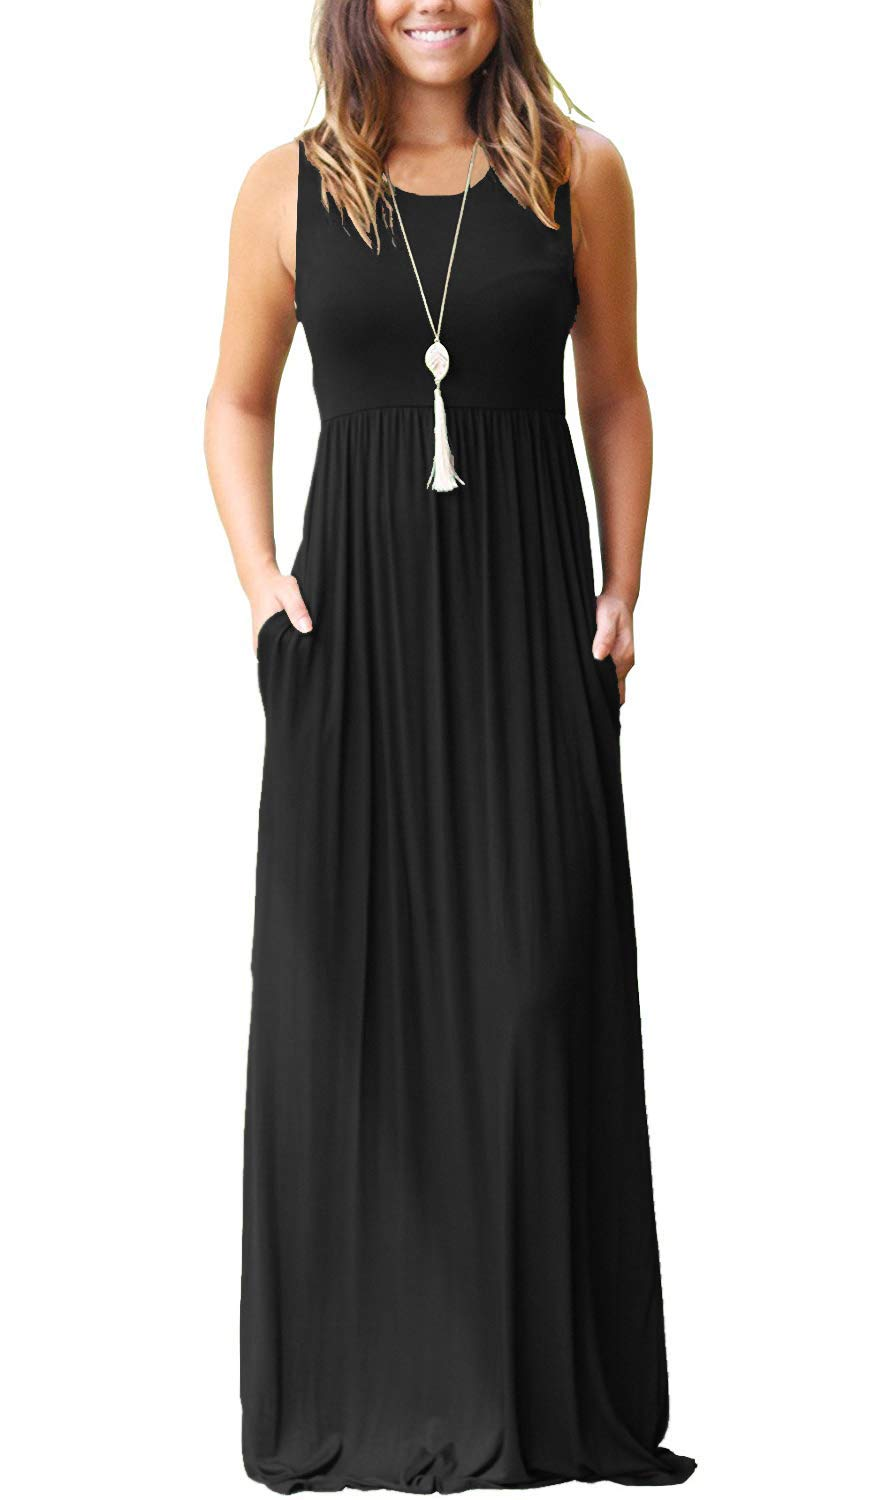 AUSELILY Womens Summer Floral Casual Maxi Maternity Prom Formal Plus Size Dresses for Women XL Black by AUSELILY